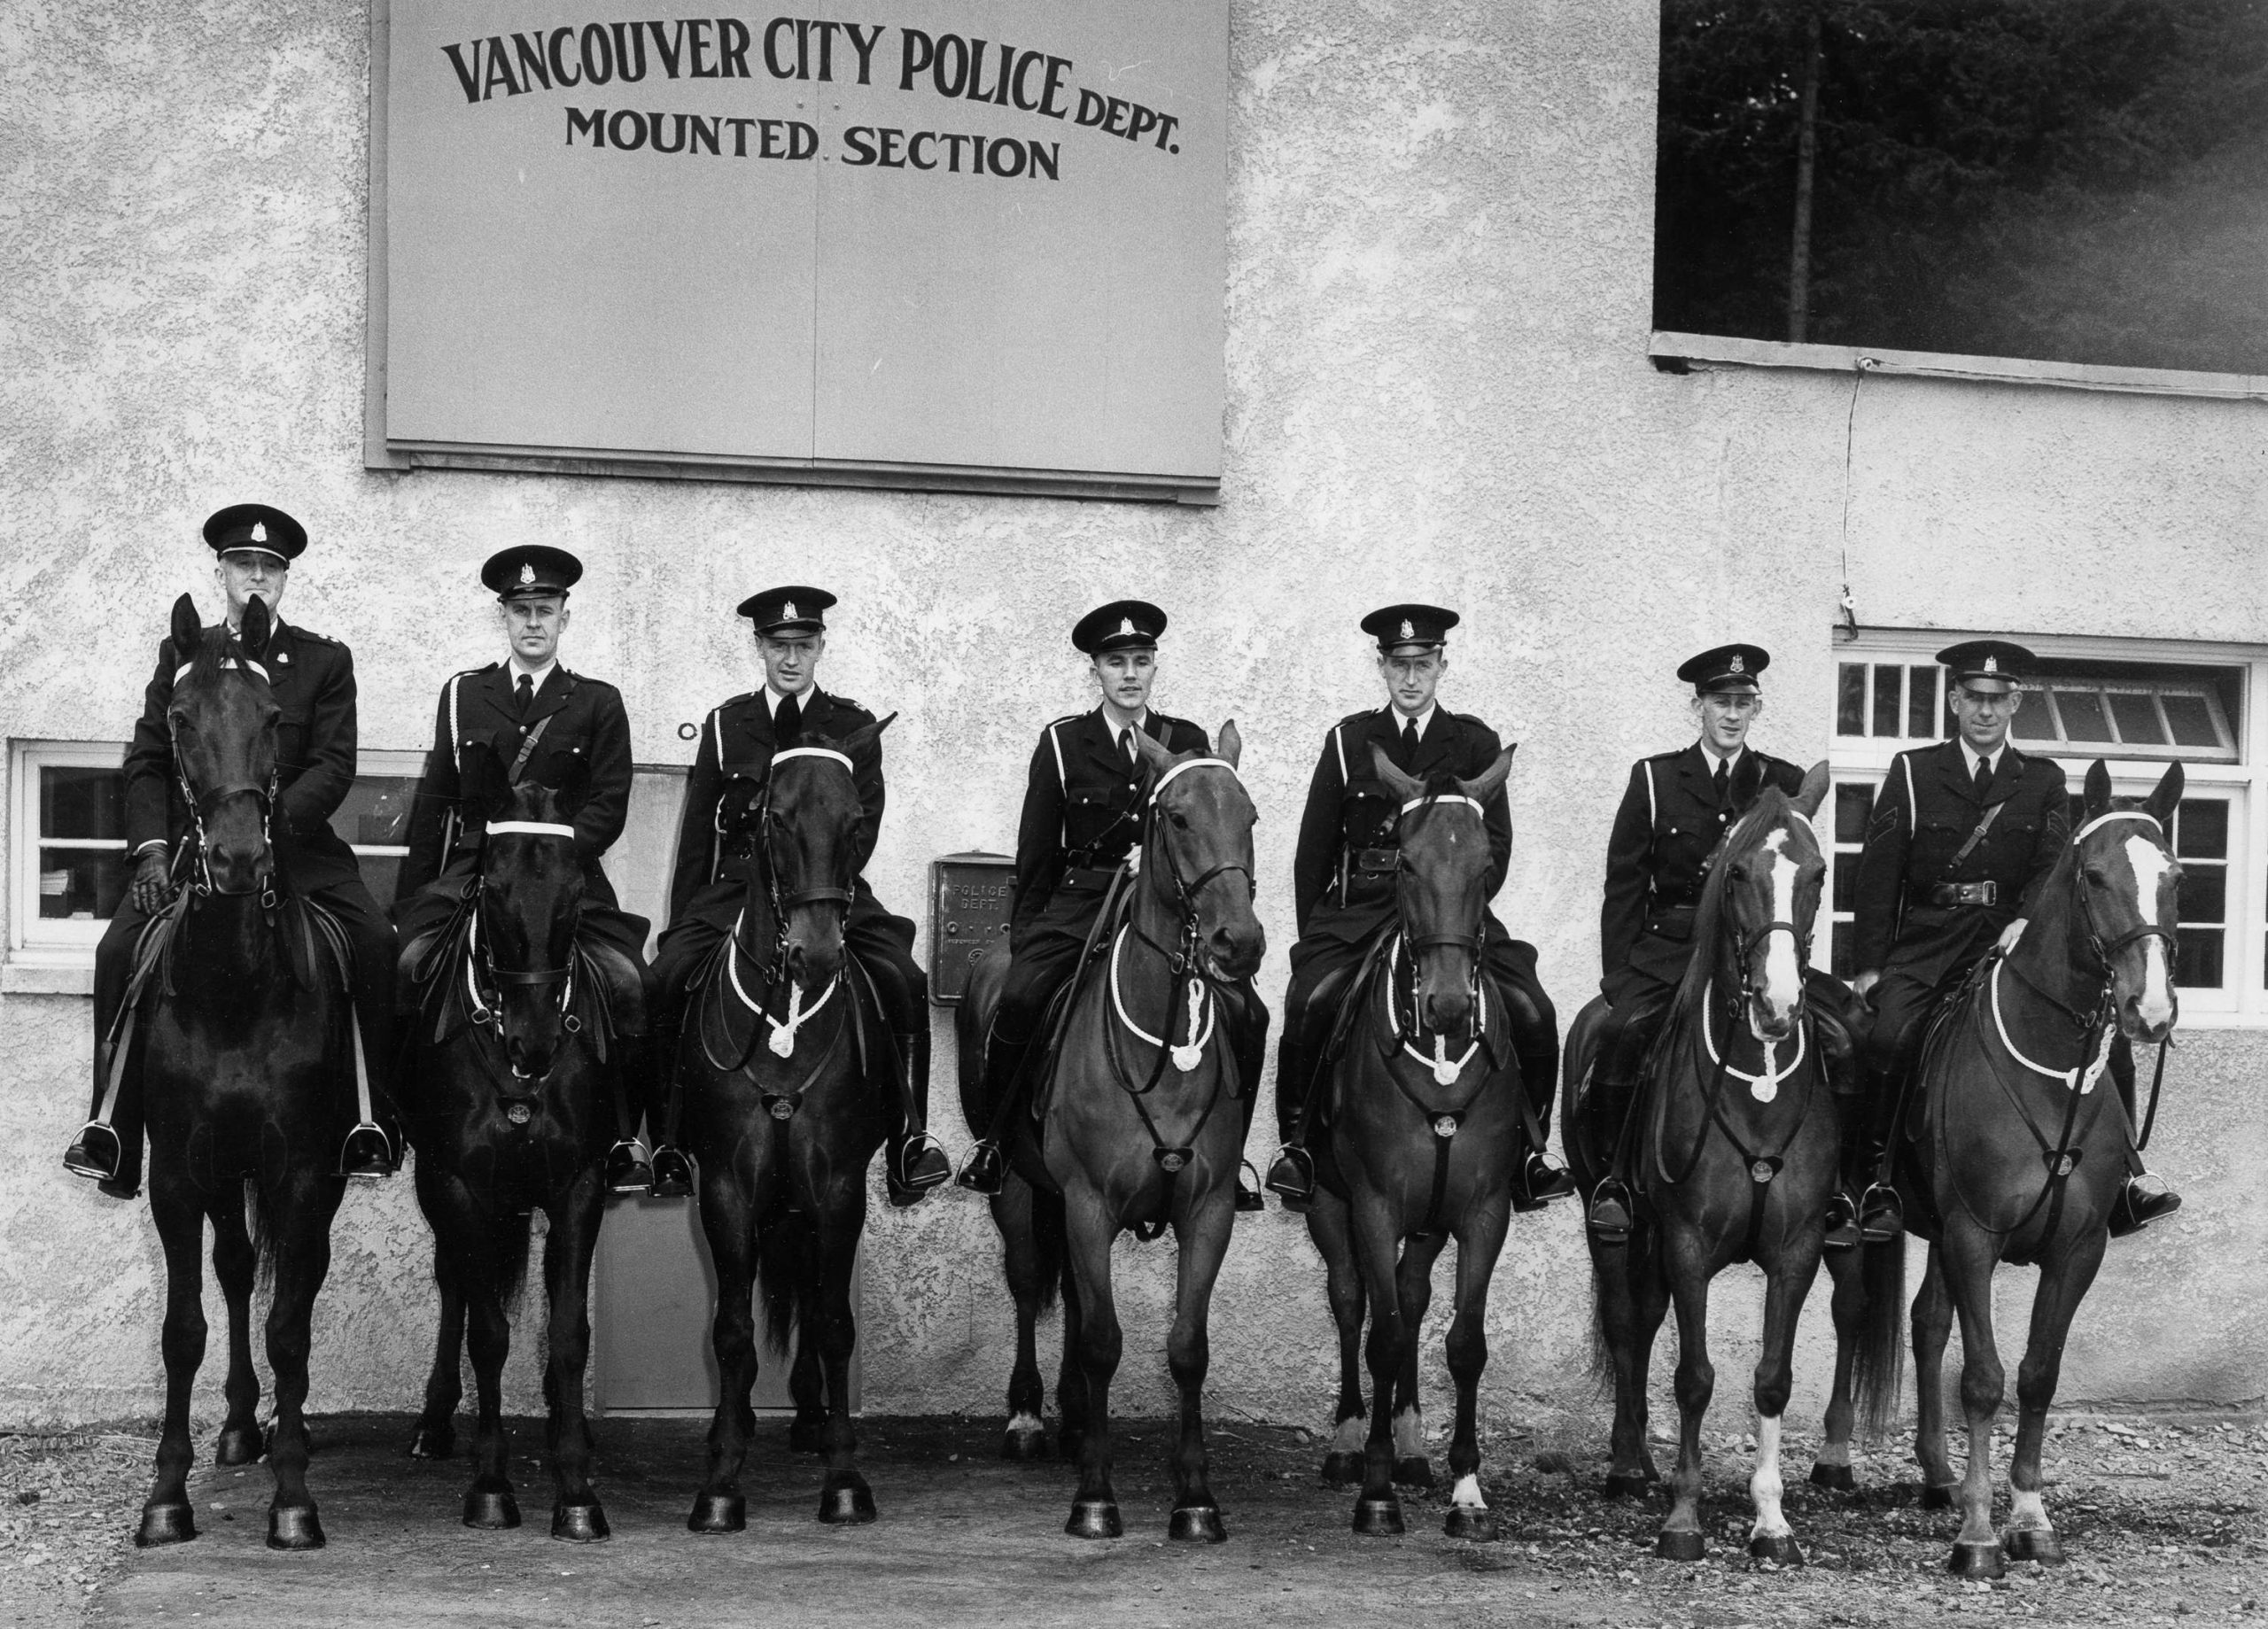 Vancouver Mounted Police officers on horseback. Reference code: VPD-S214-: CVA 480-190